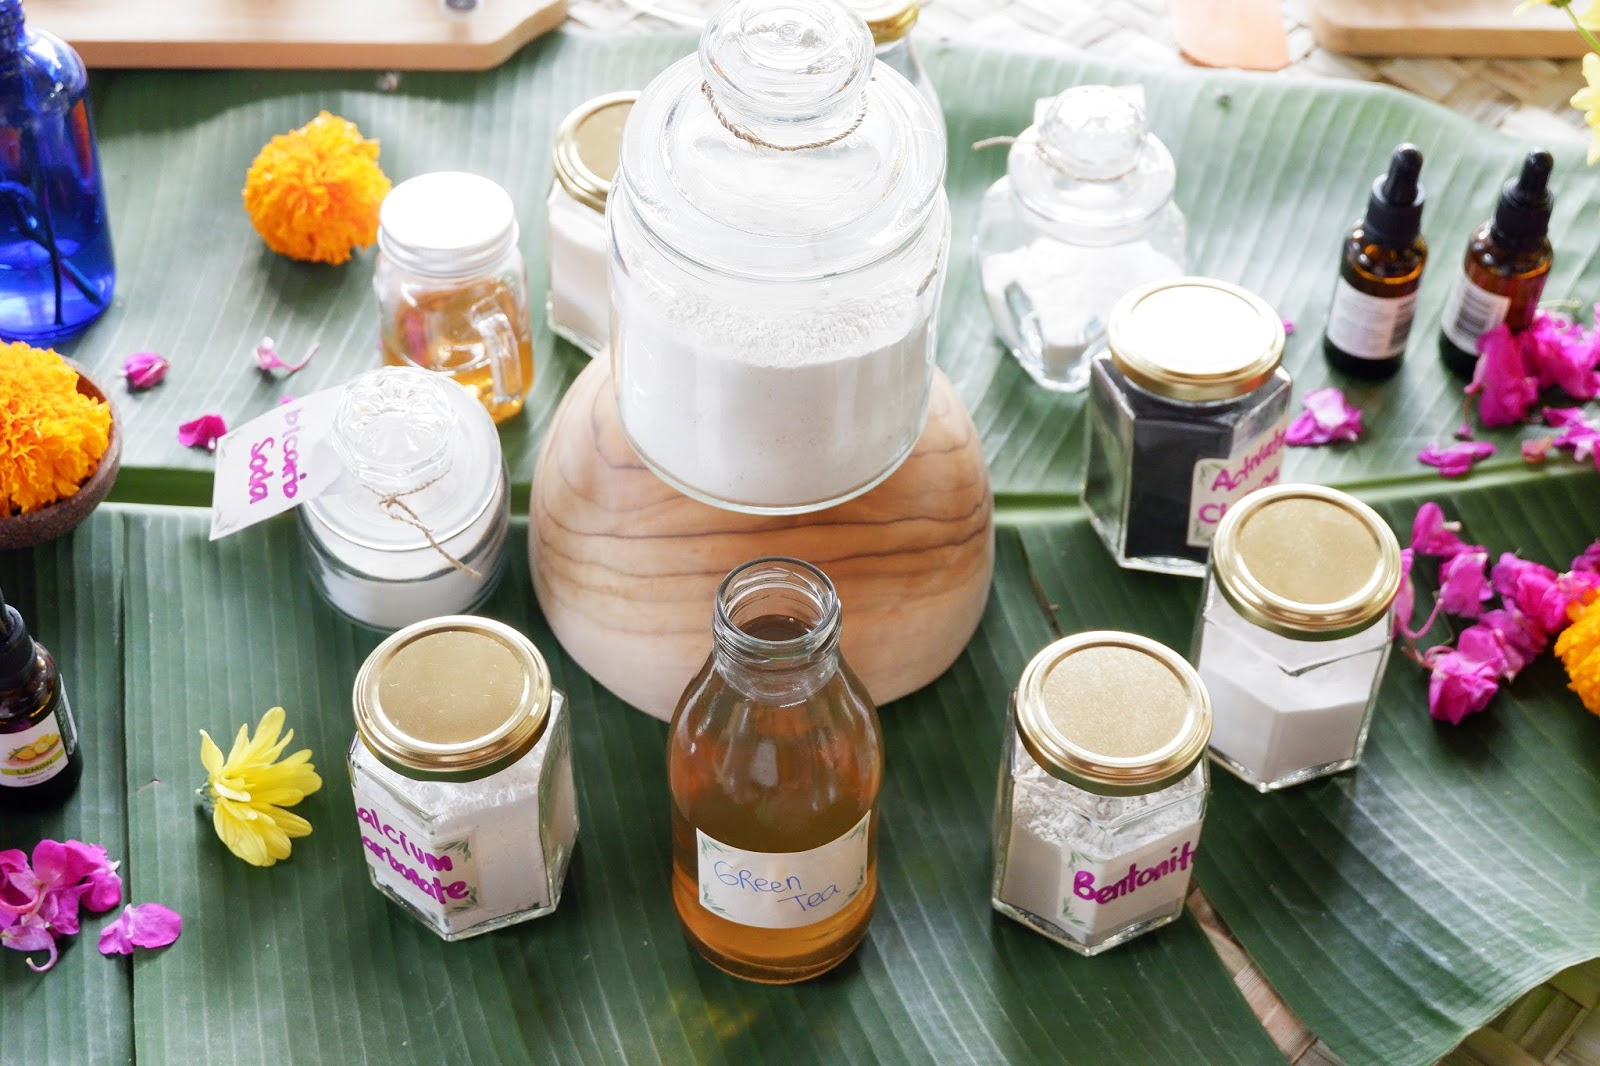 DIY Workshop Skincare With Utama Spice